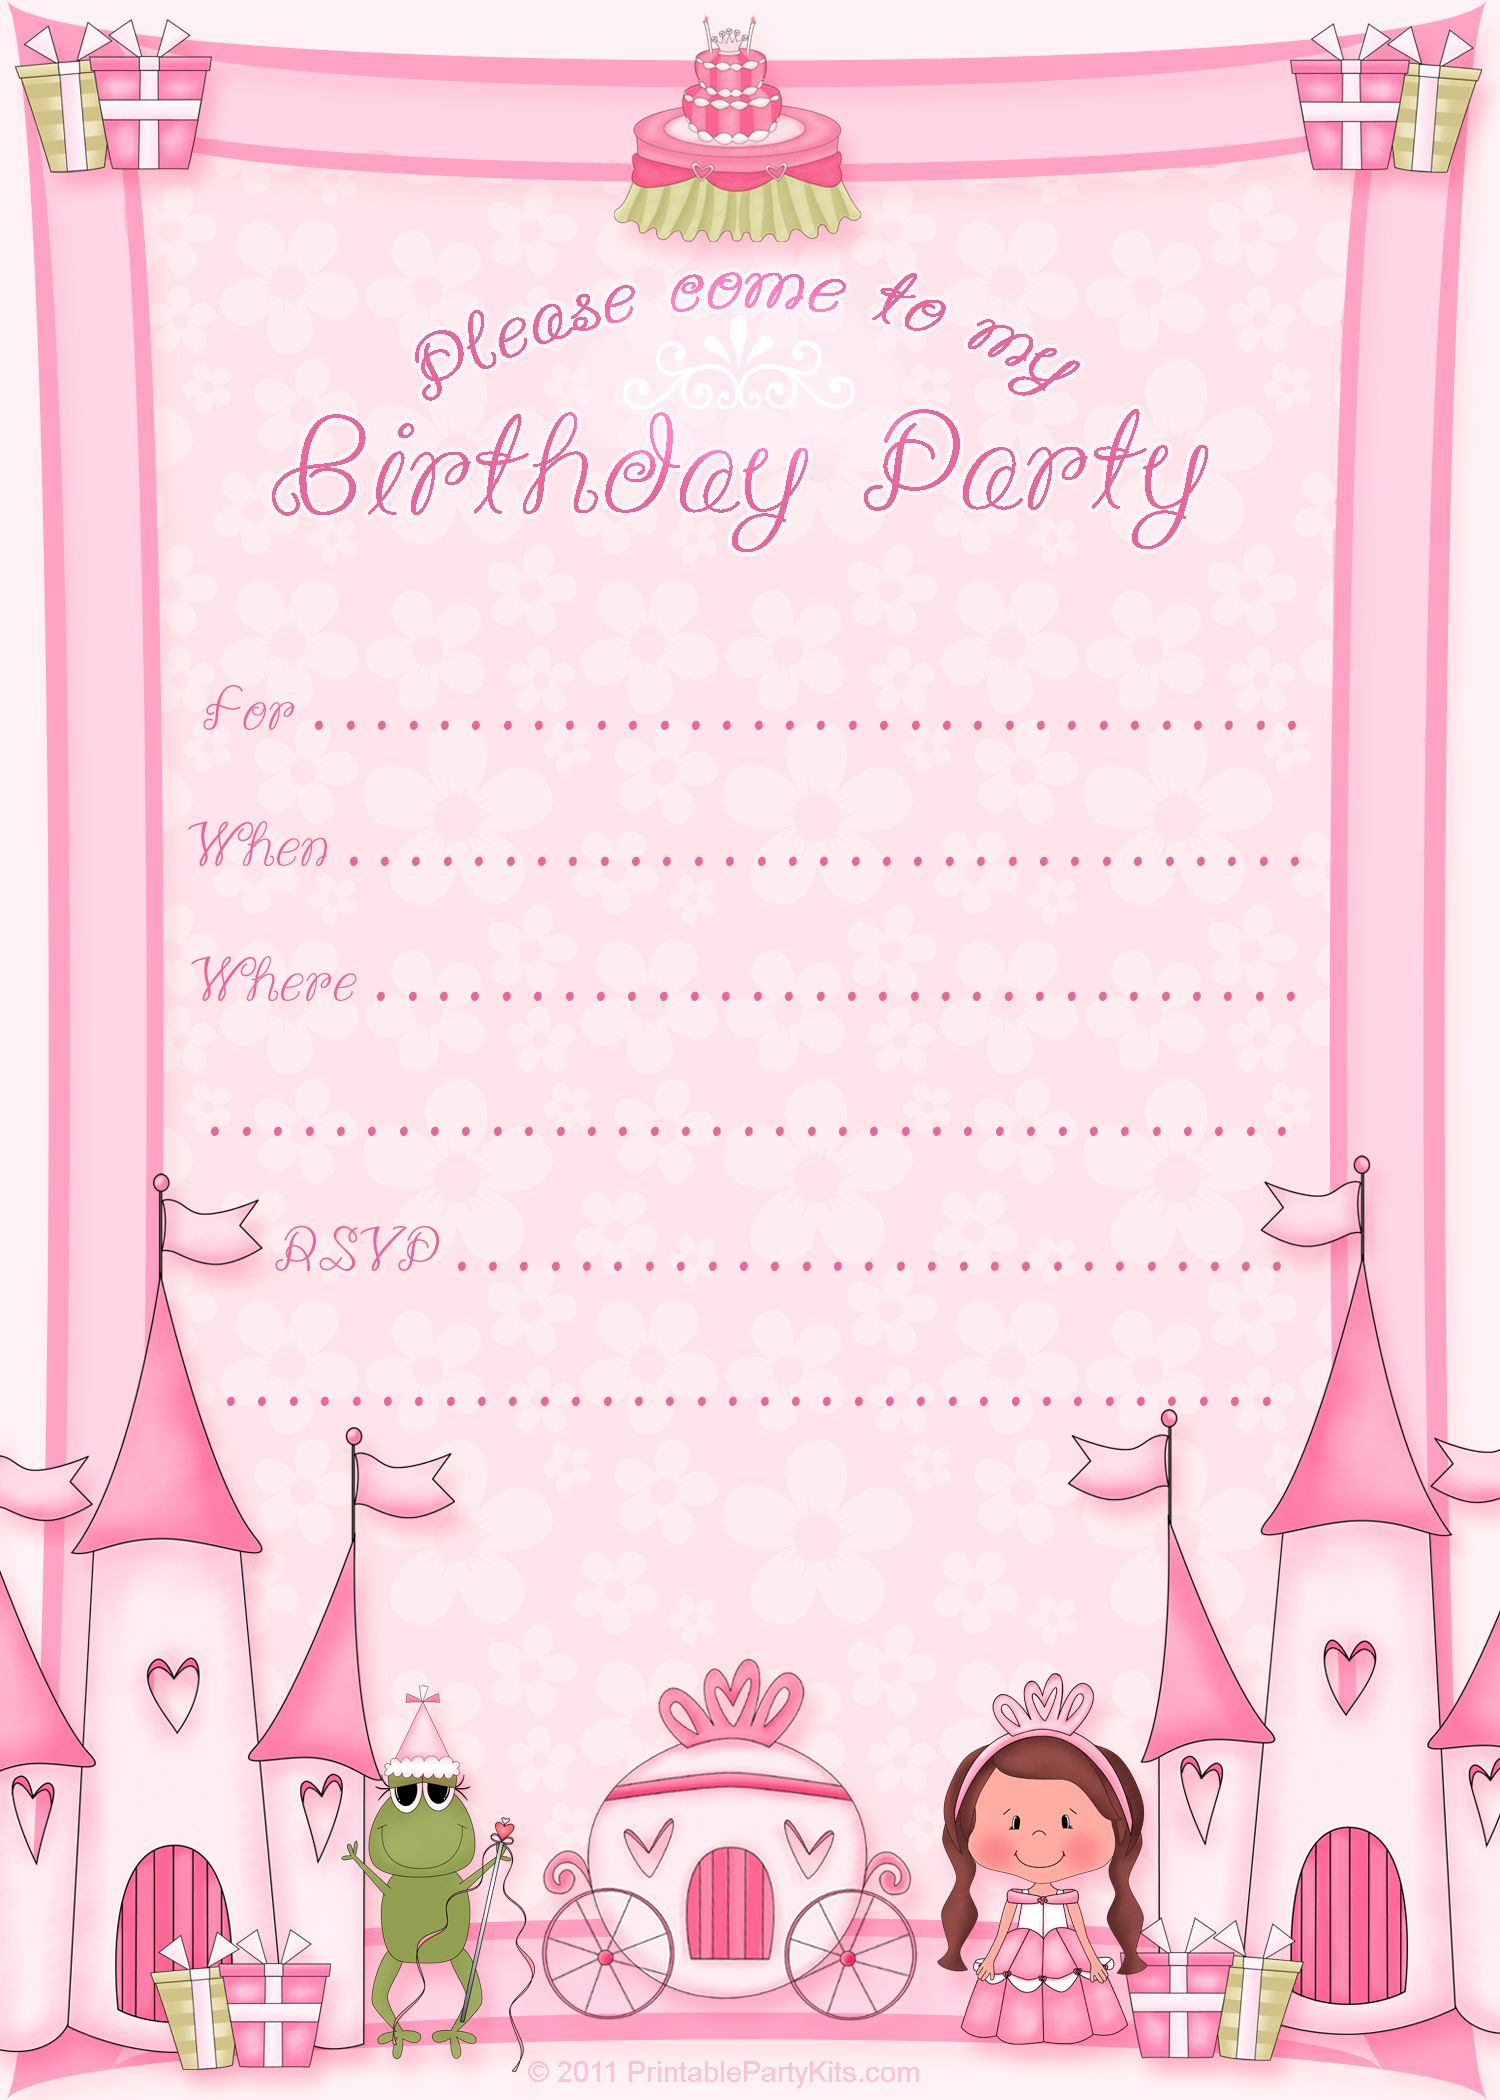 Princess birthday party invitations free printable acurnamedia princess birthday party invitations free printable filmwisefo